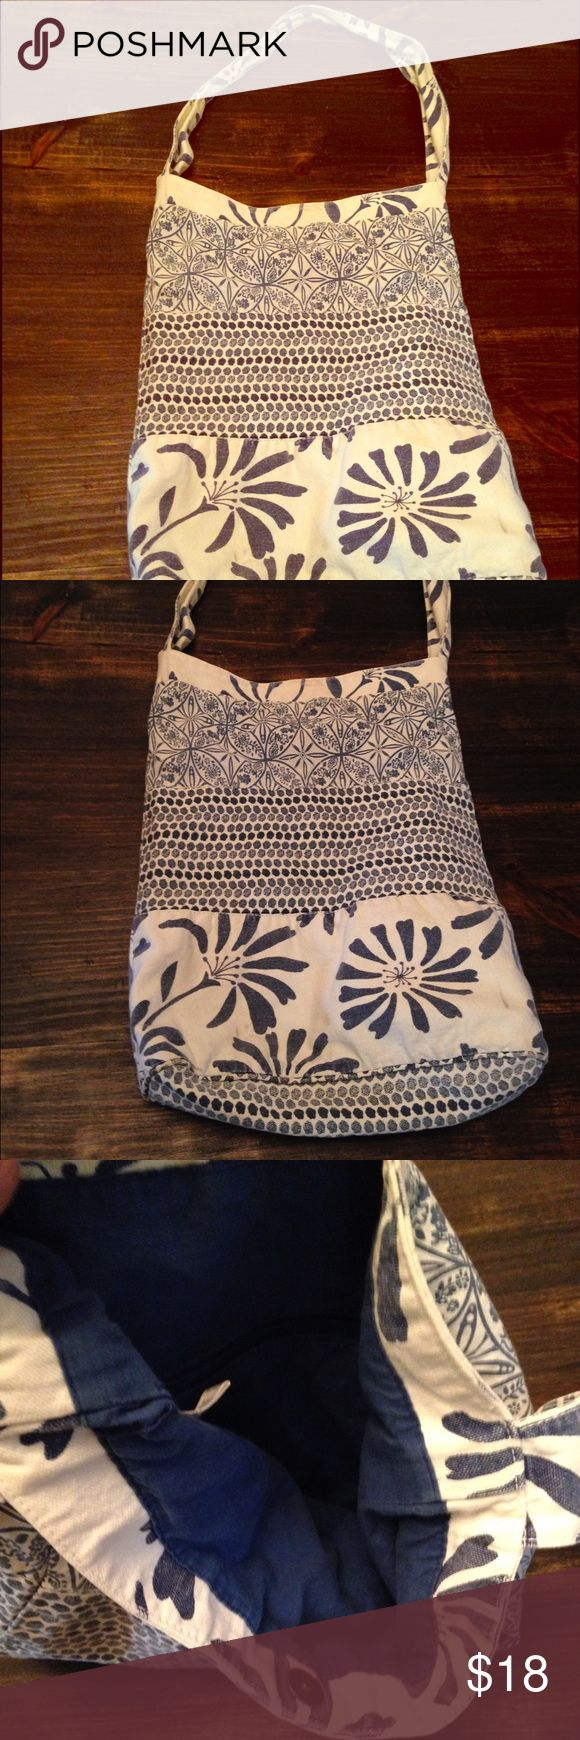 Old Navy Purse Hobo purse in fabulous condition, clean , appropriately 17 inches deep, button closure inside zipper pocket. Old Navy Bags Hobos